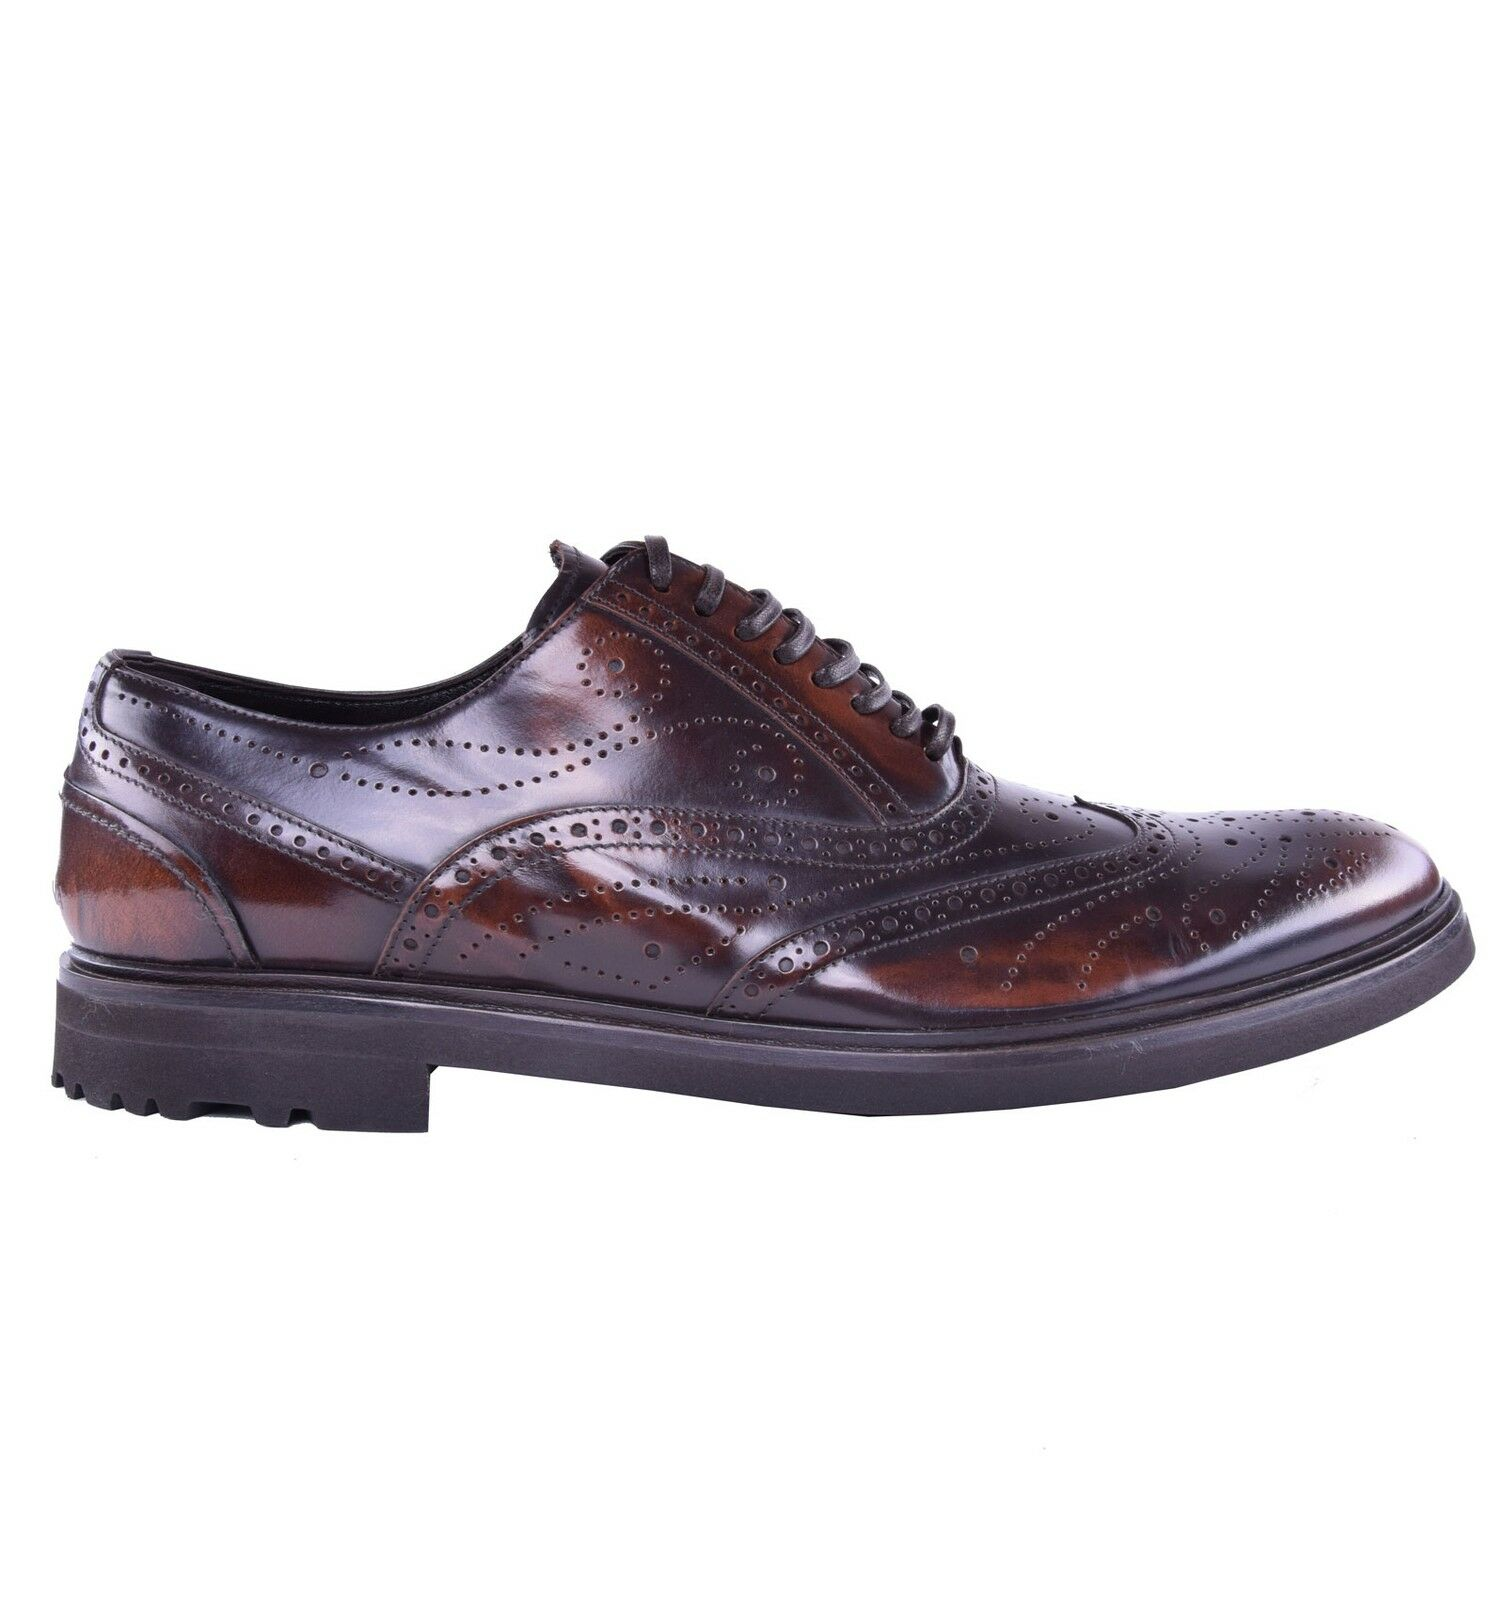 DOLCE & GABBANA Solid Business Calf Leather Shoes Brown 03879 Scarpe classiche da uomo